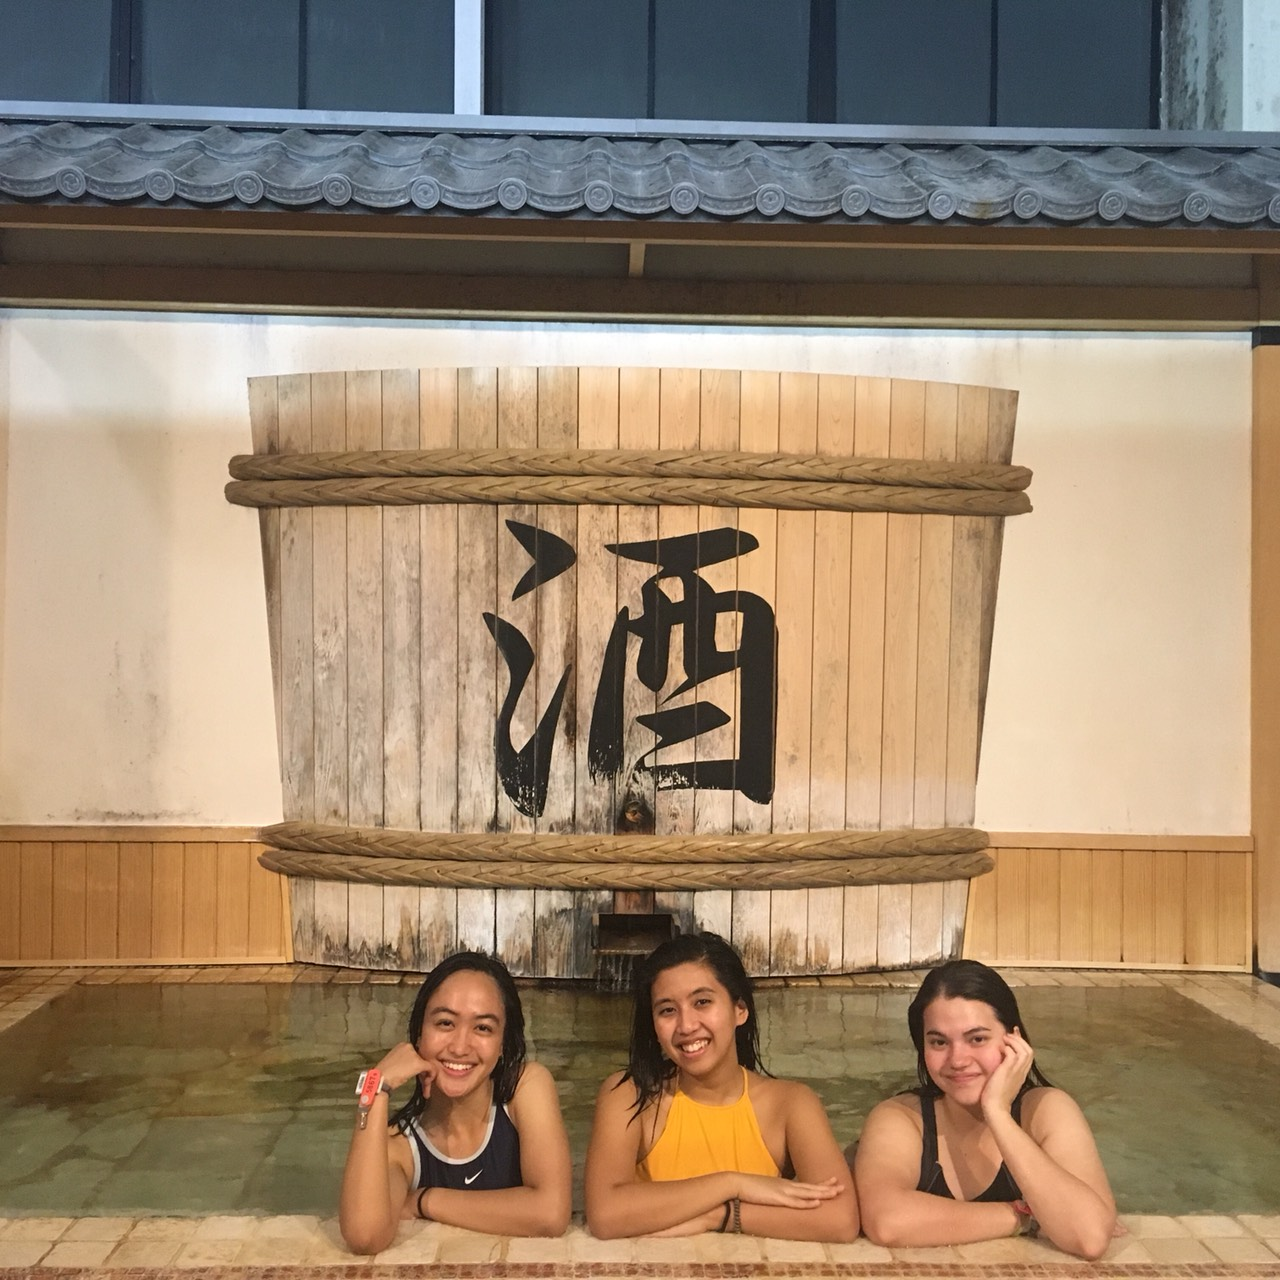 Three people posing in a bathtub with a large sake barrel in the background